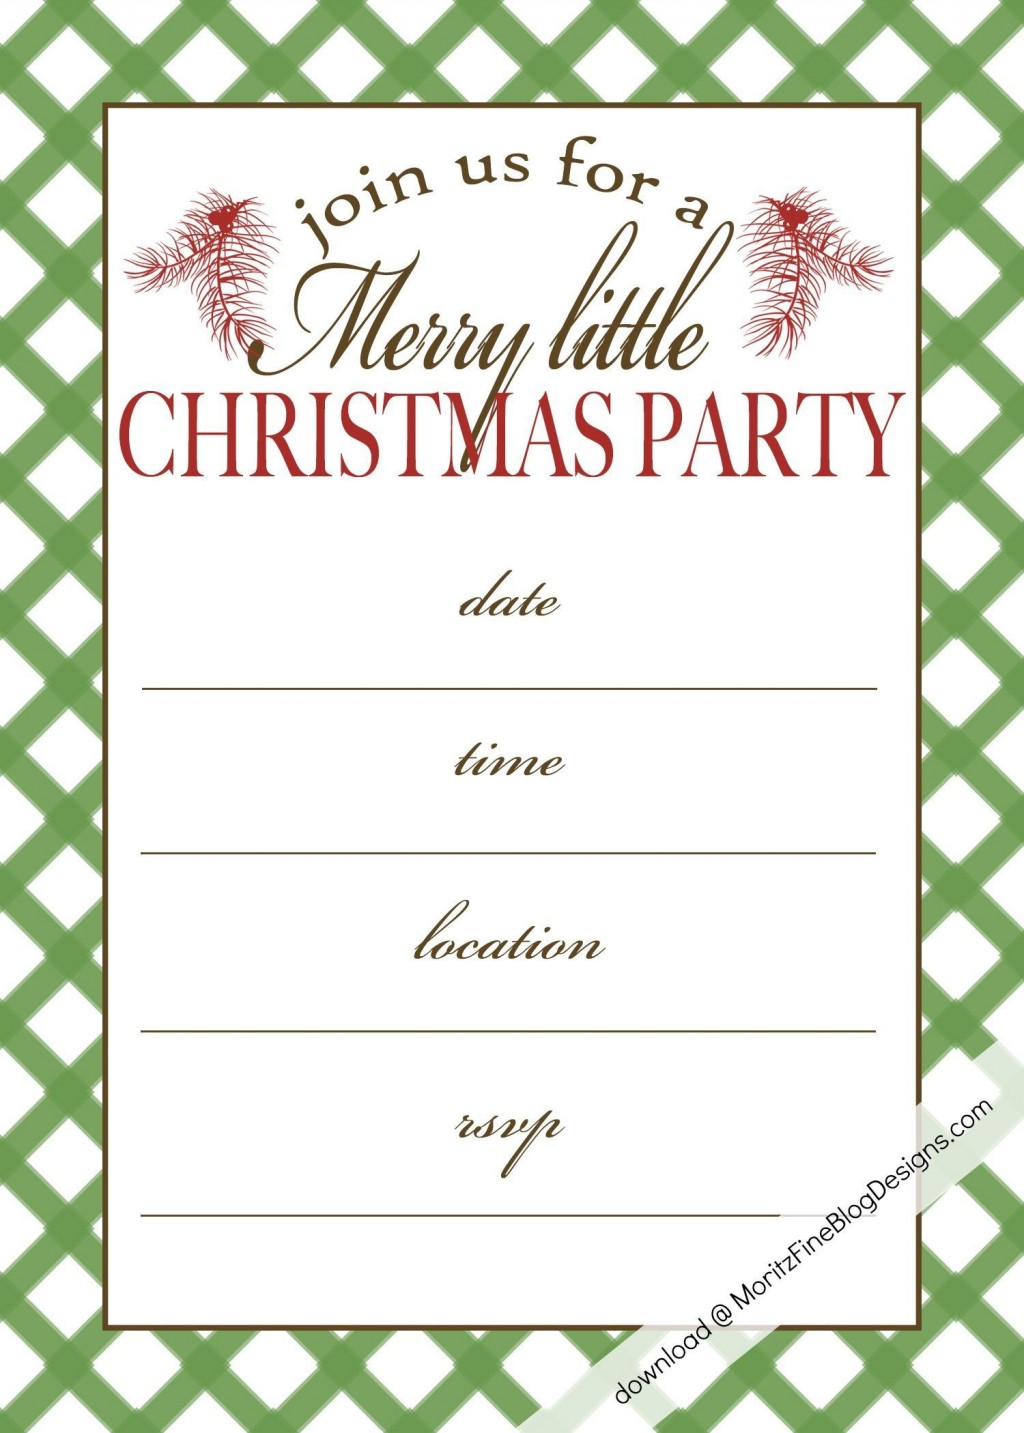 002 Frightening Holiday Party Invite Template Word Example  Cocktail Invitation Wording Sample Microsoft ChristmaLarge